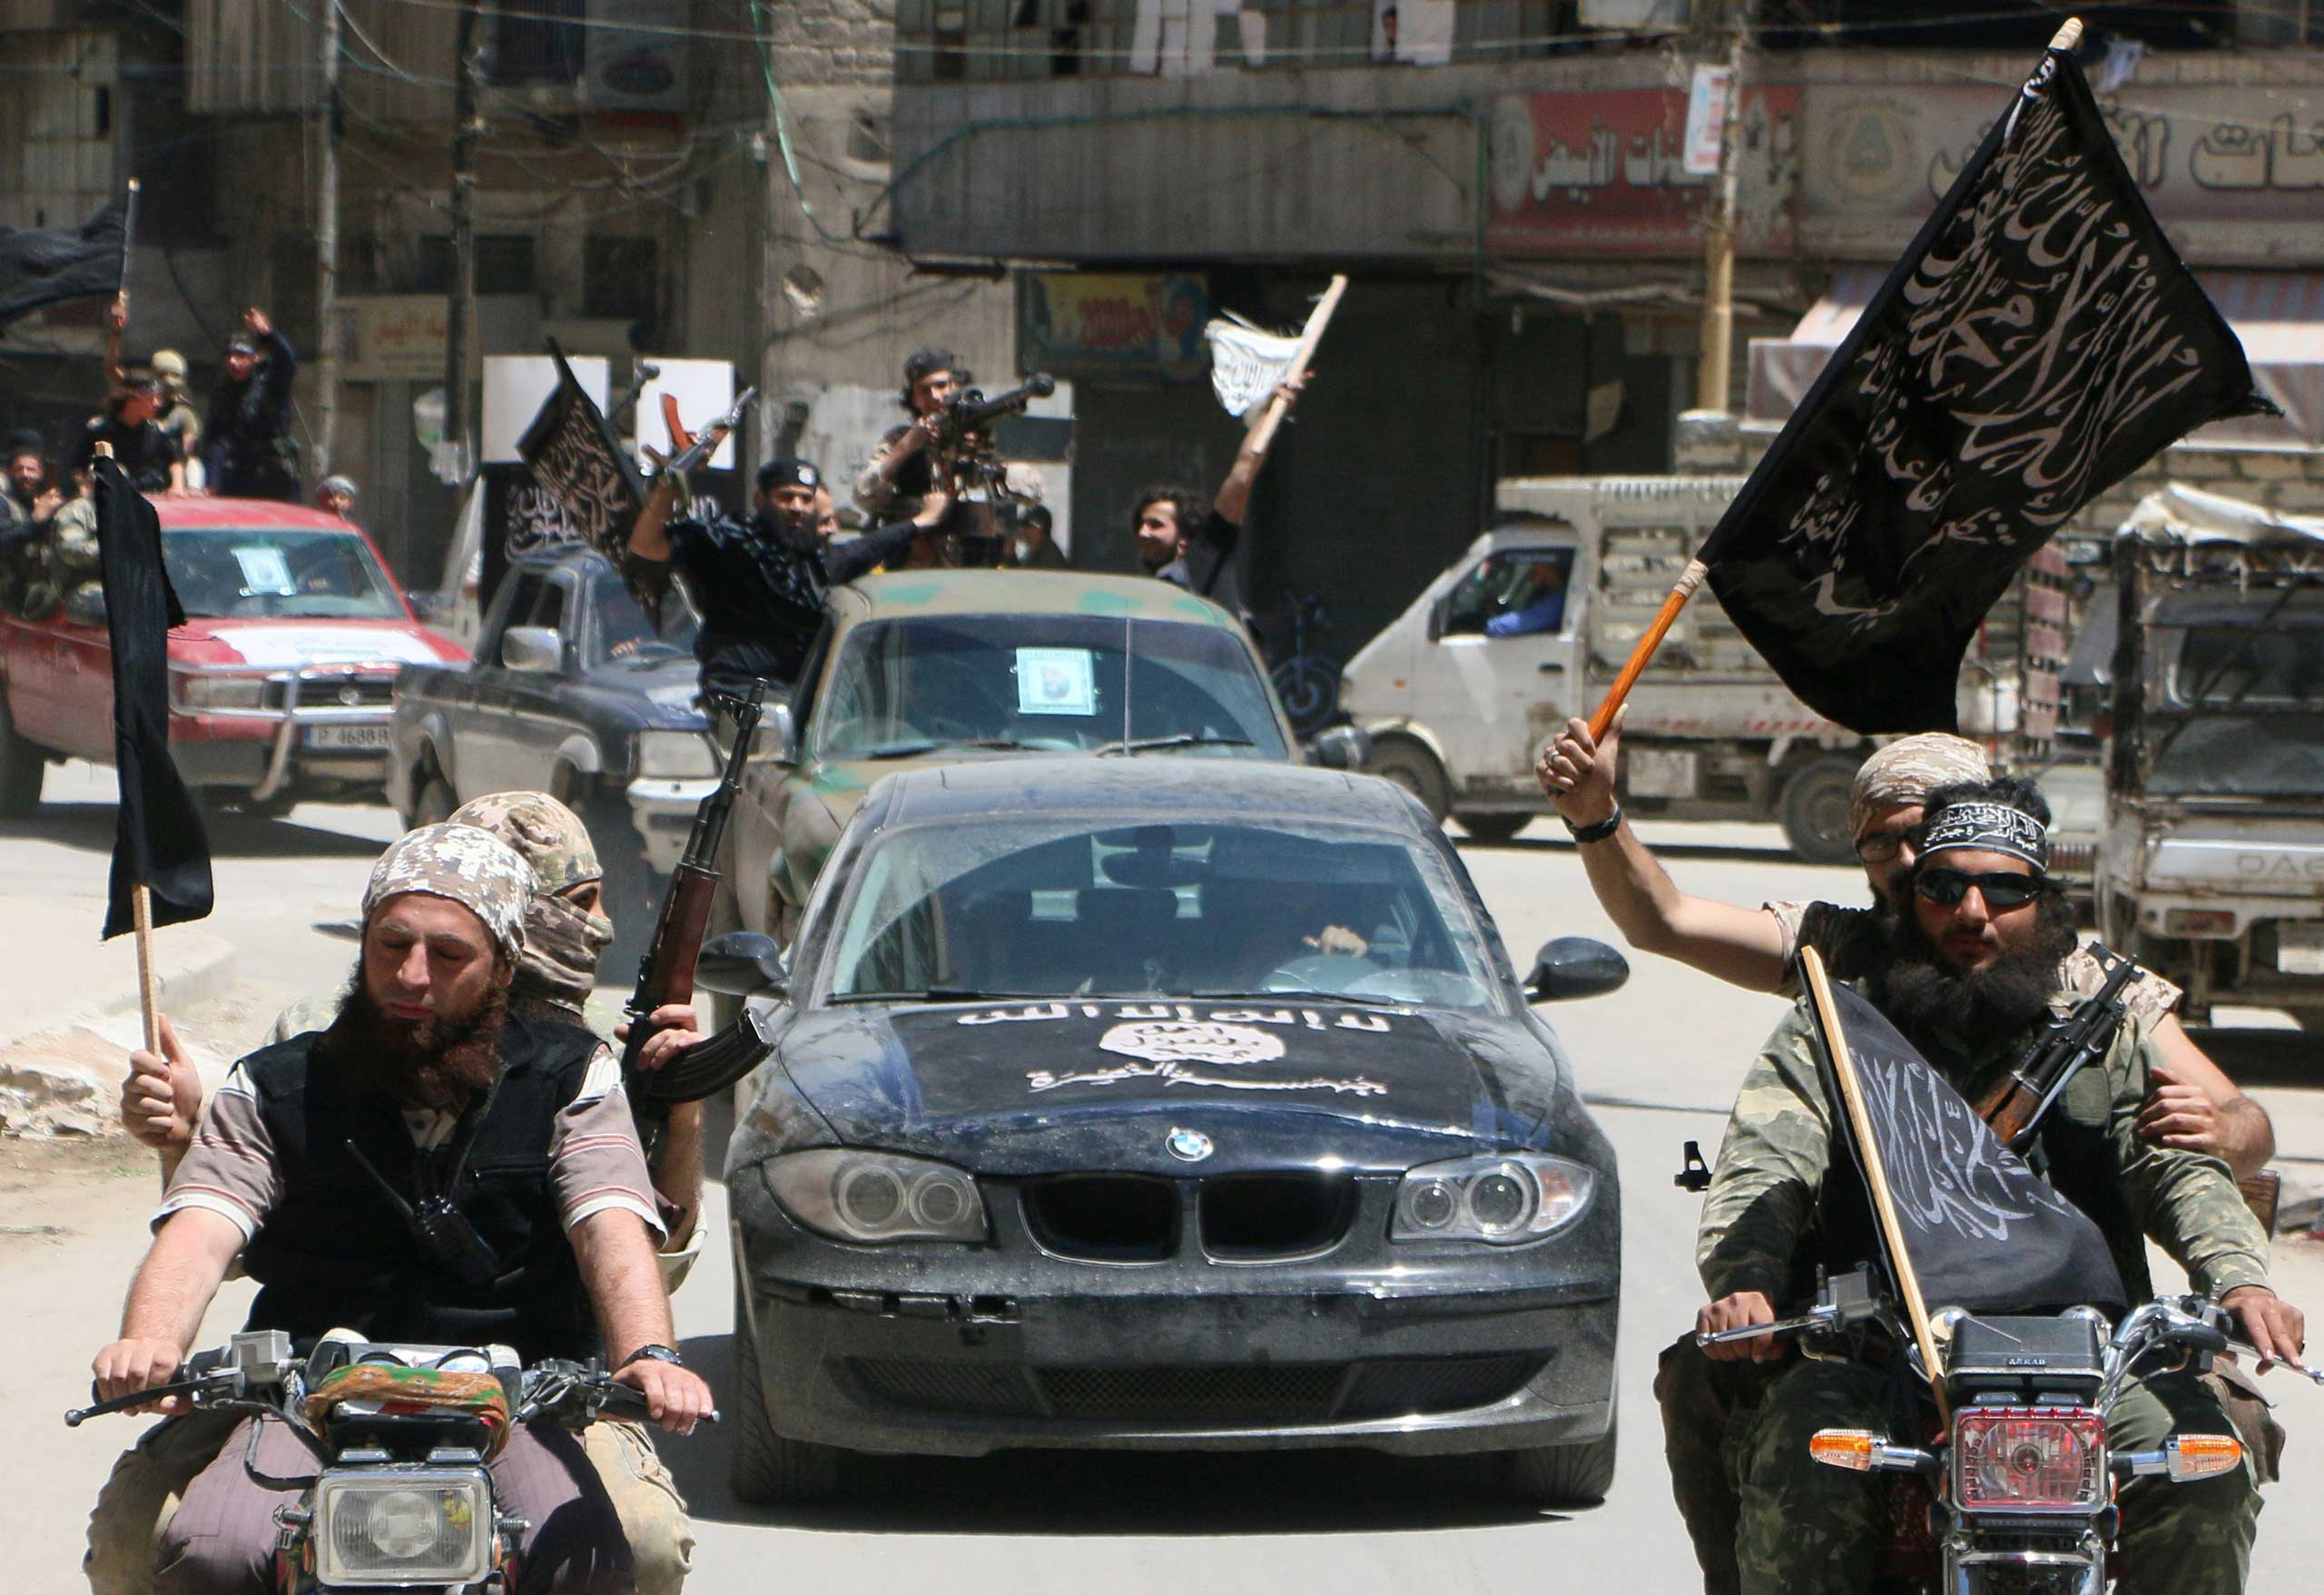 Fighters from Al-Qaeda's Syrian affiliate Al-Nusra Front drive in the northern Syrian city of Aleppo flying Islamist flags as they head to a frontline, on May 26, 2015.